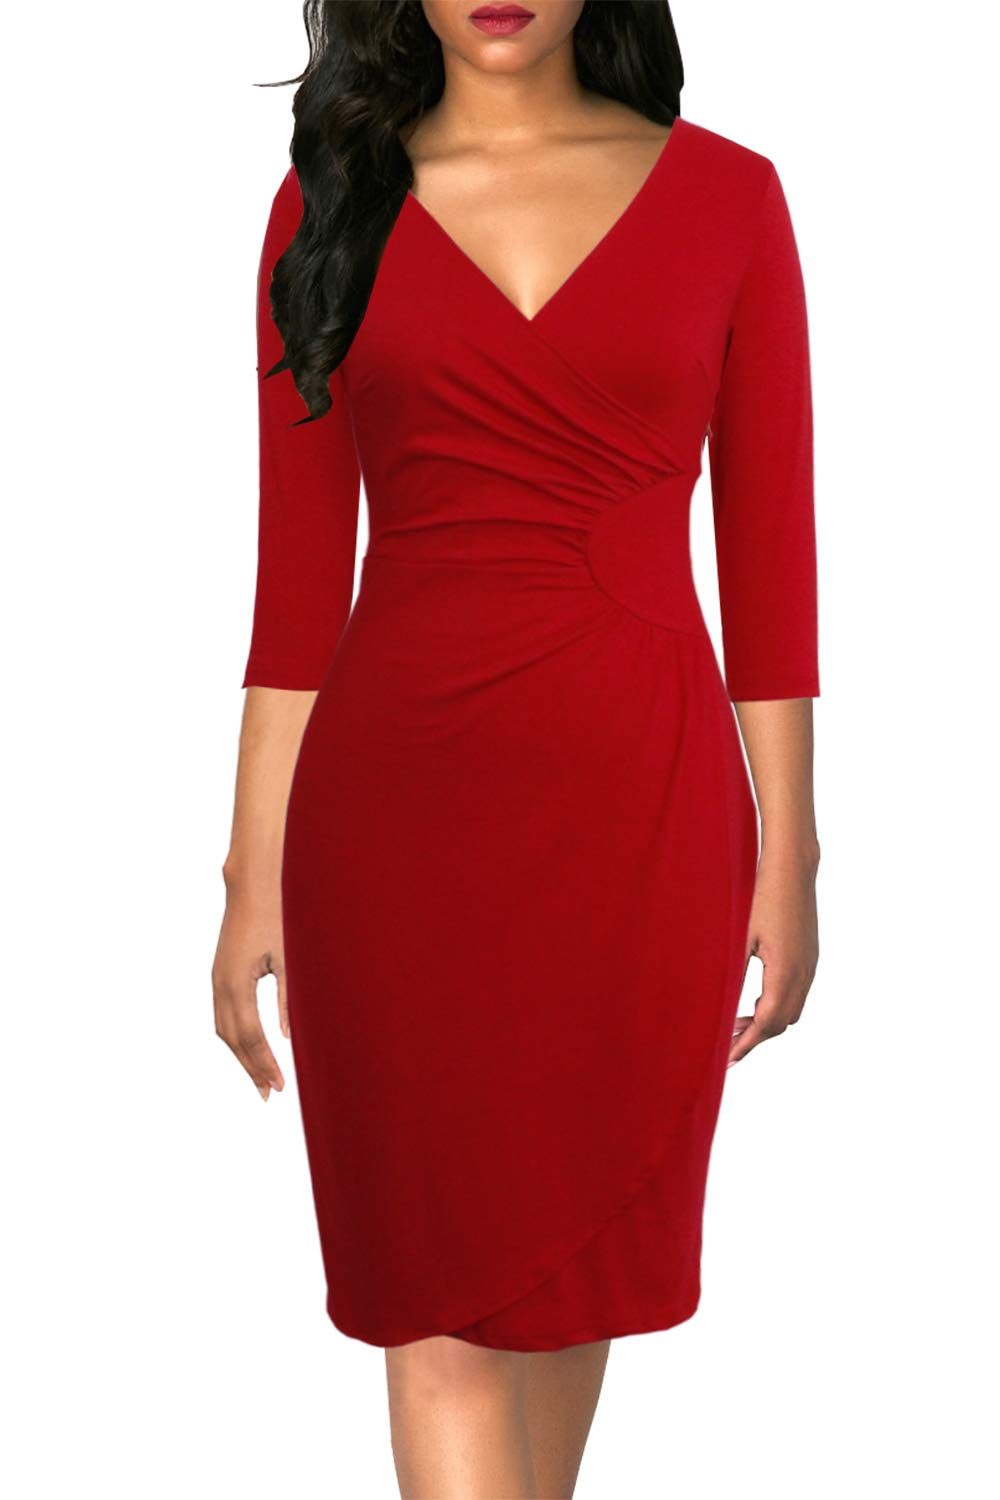 Lyrur Women's Vintage 3/4 Sleeve V-Neck Sheath Bodycon Knee Length Casual Party Work Ruched Faux Black Wrap Dress